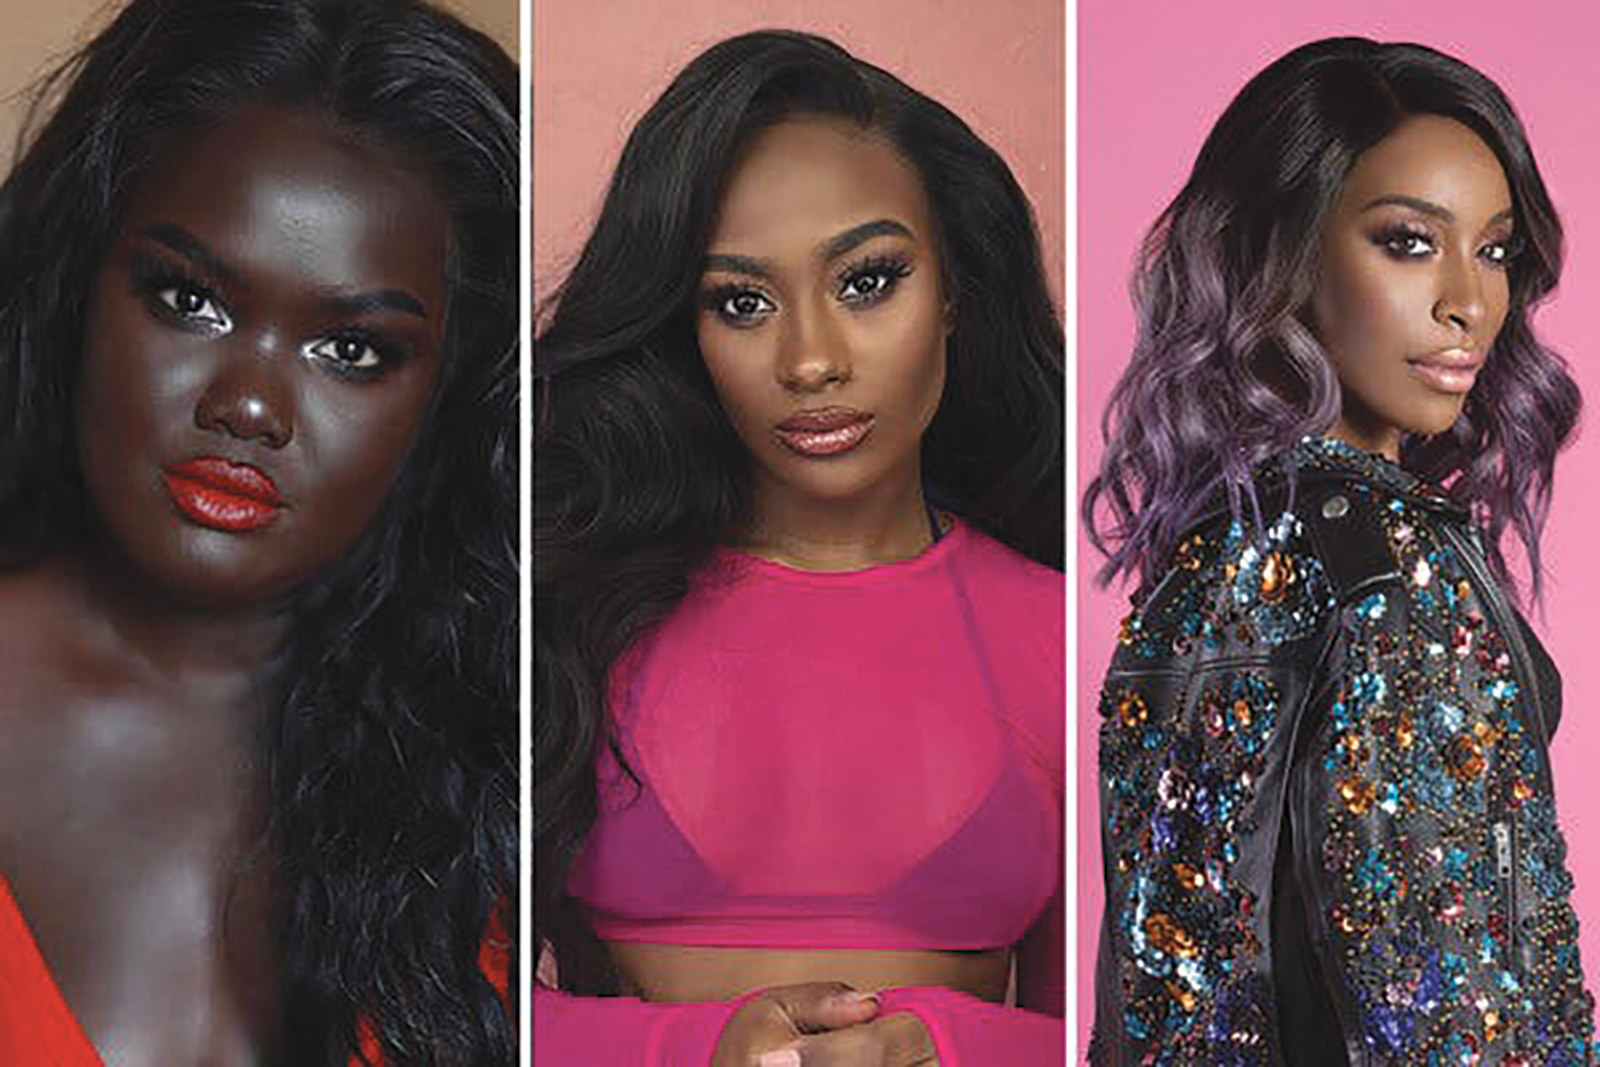 '25 Black Women in Beauty' Launches to Celebrate Black Women Professionals, Entrepreneurs and Influencers in the Beauty Industry pic.jpg